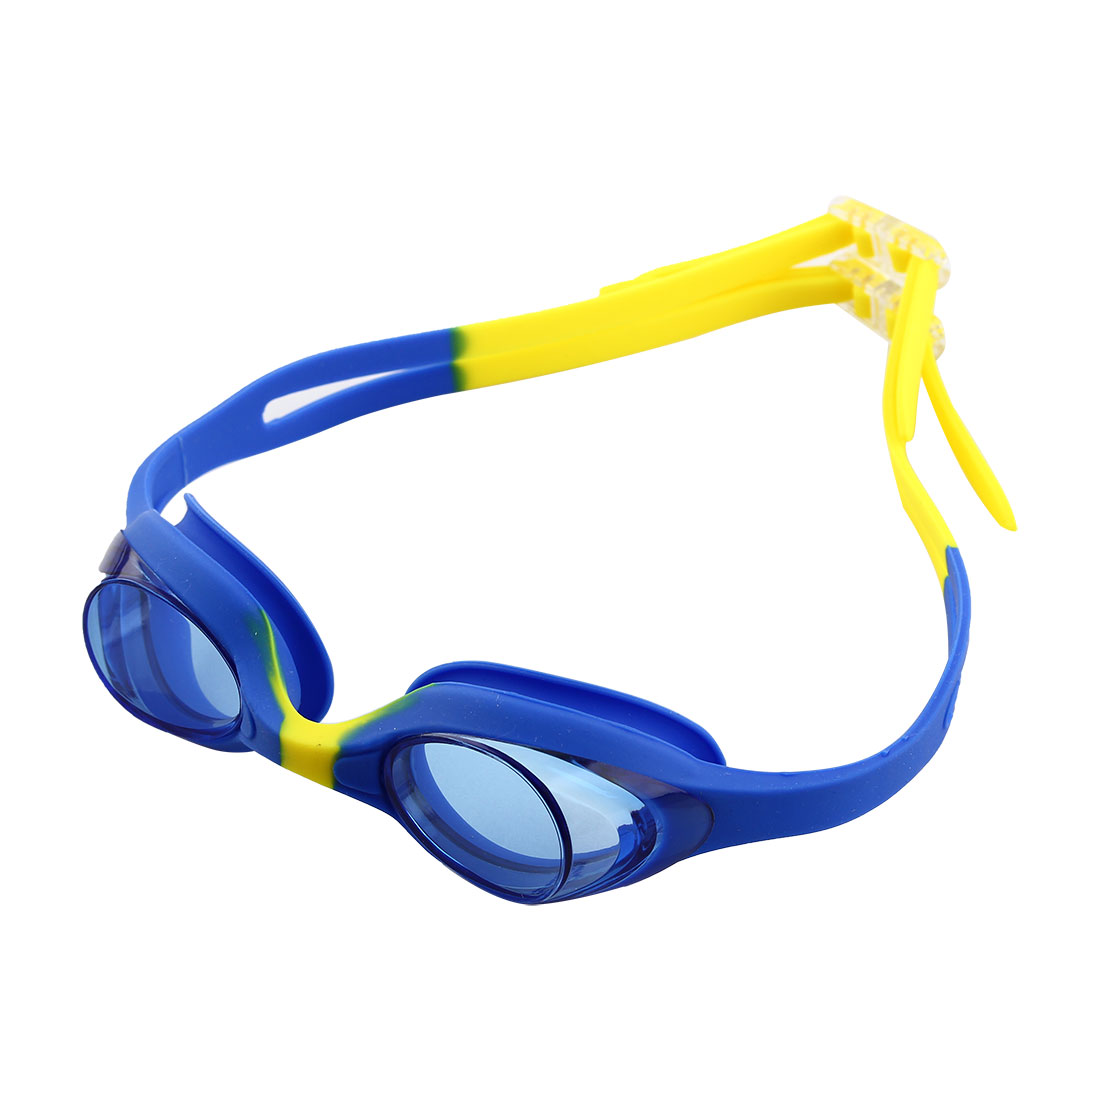 Clear Vision Anti Fog Swimming Goggles Glasses Blue Yellow for Youth Kids Child by Unique-Bargains